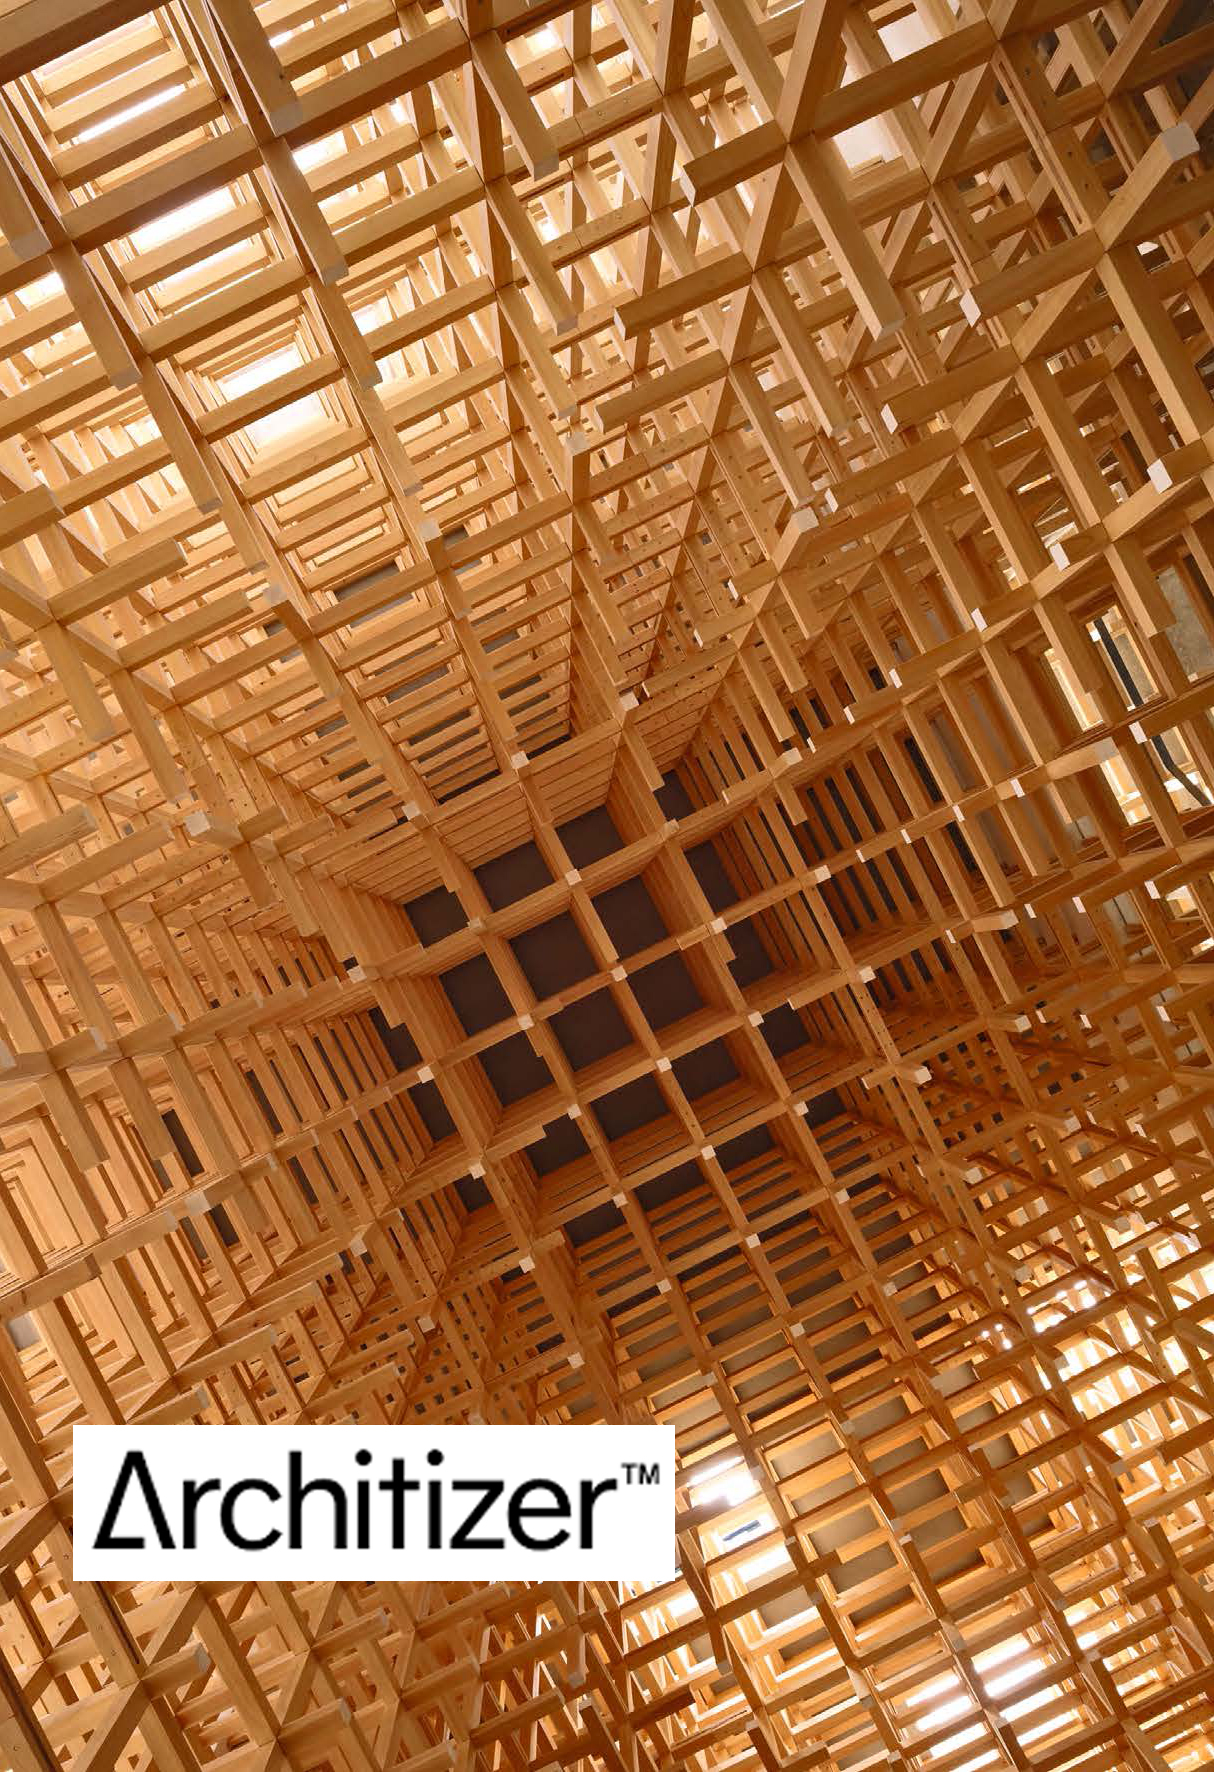 Quintessential architect who is often ranked among other esteemed architects - his work detailed here in Kengo Kuma Topography